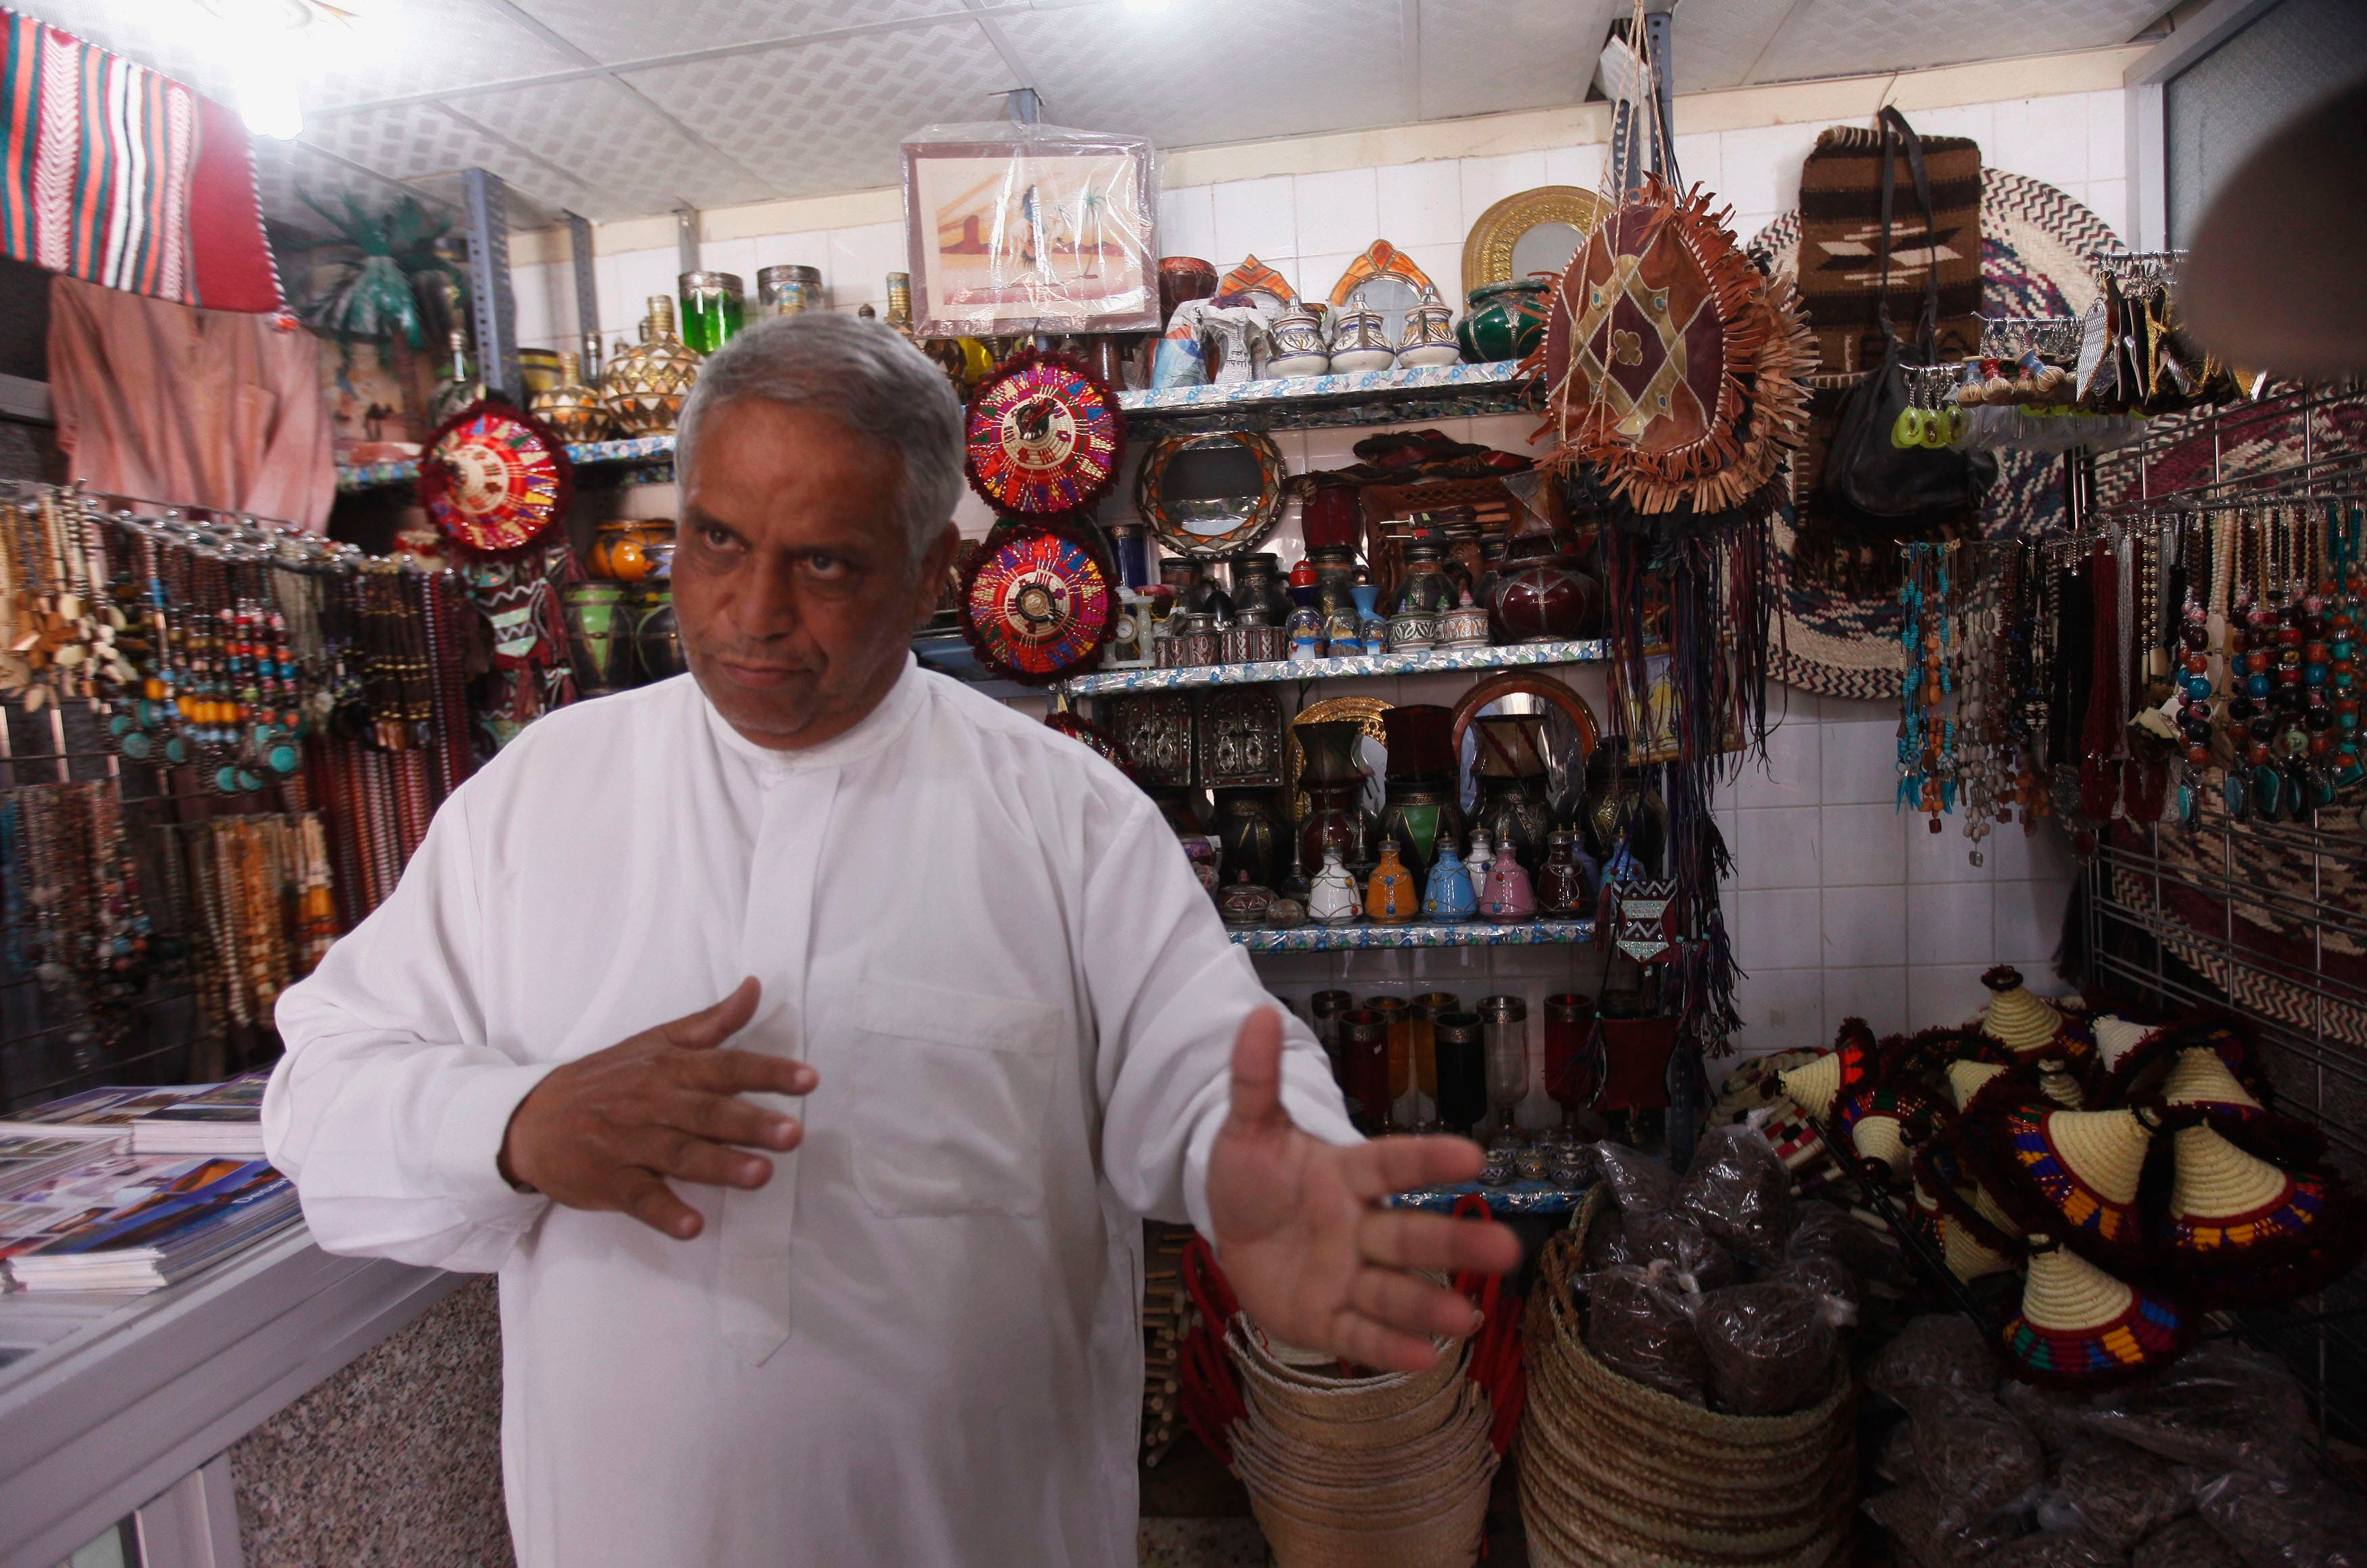 A shopkeeper, selling souvenirs and handicrafts, tends to his shop in the Libyan desert oasis town of Ghadames (Reuters)